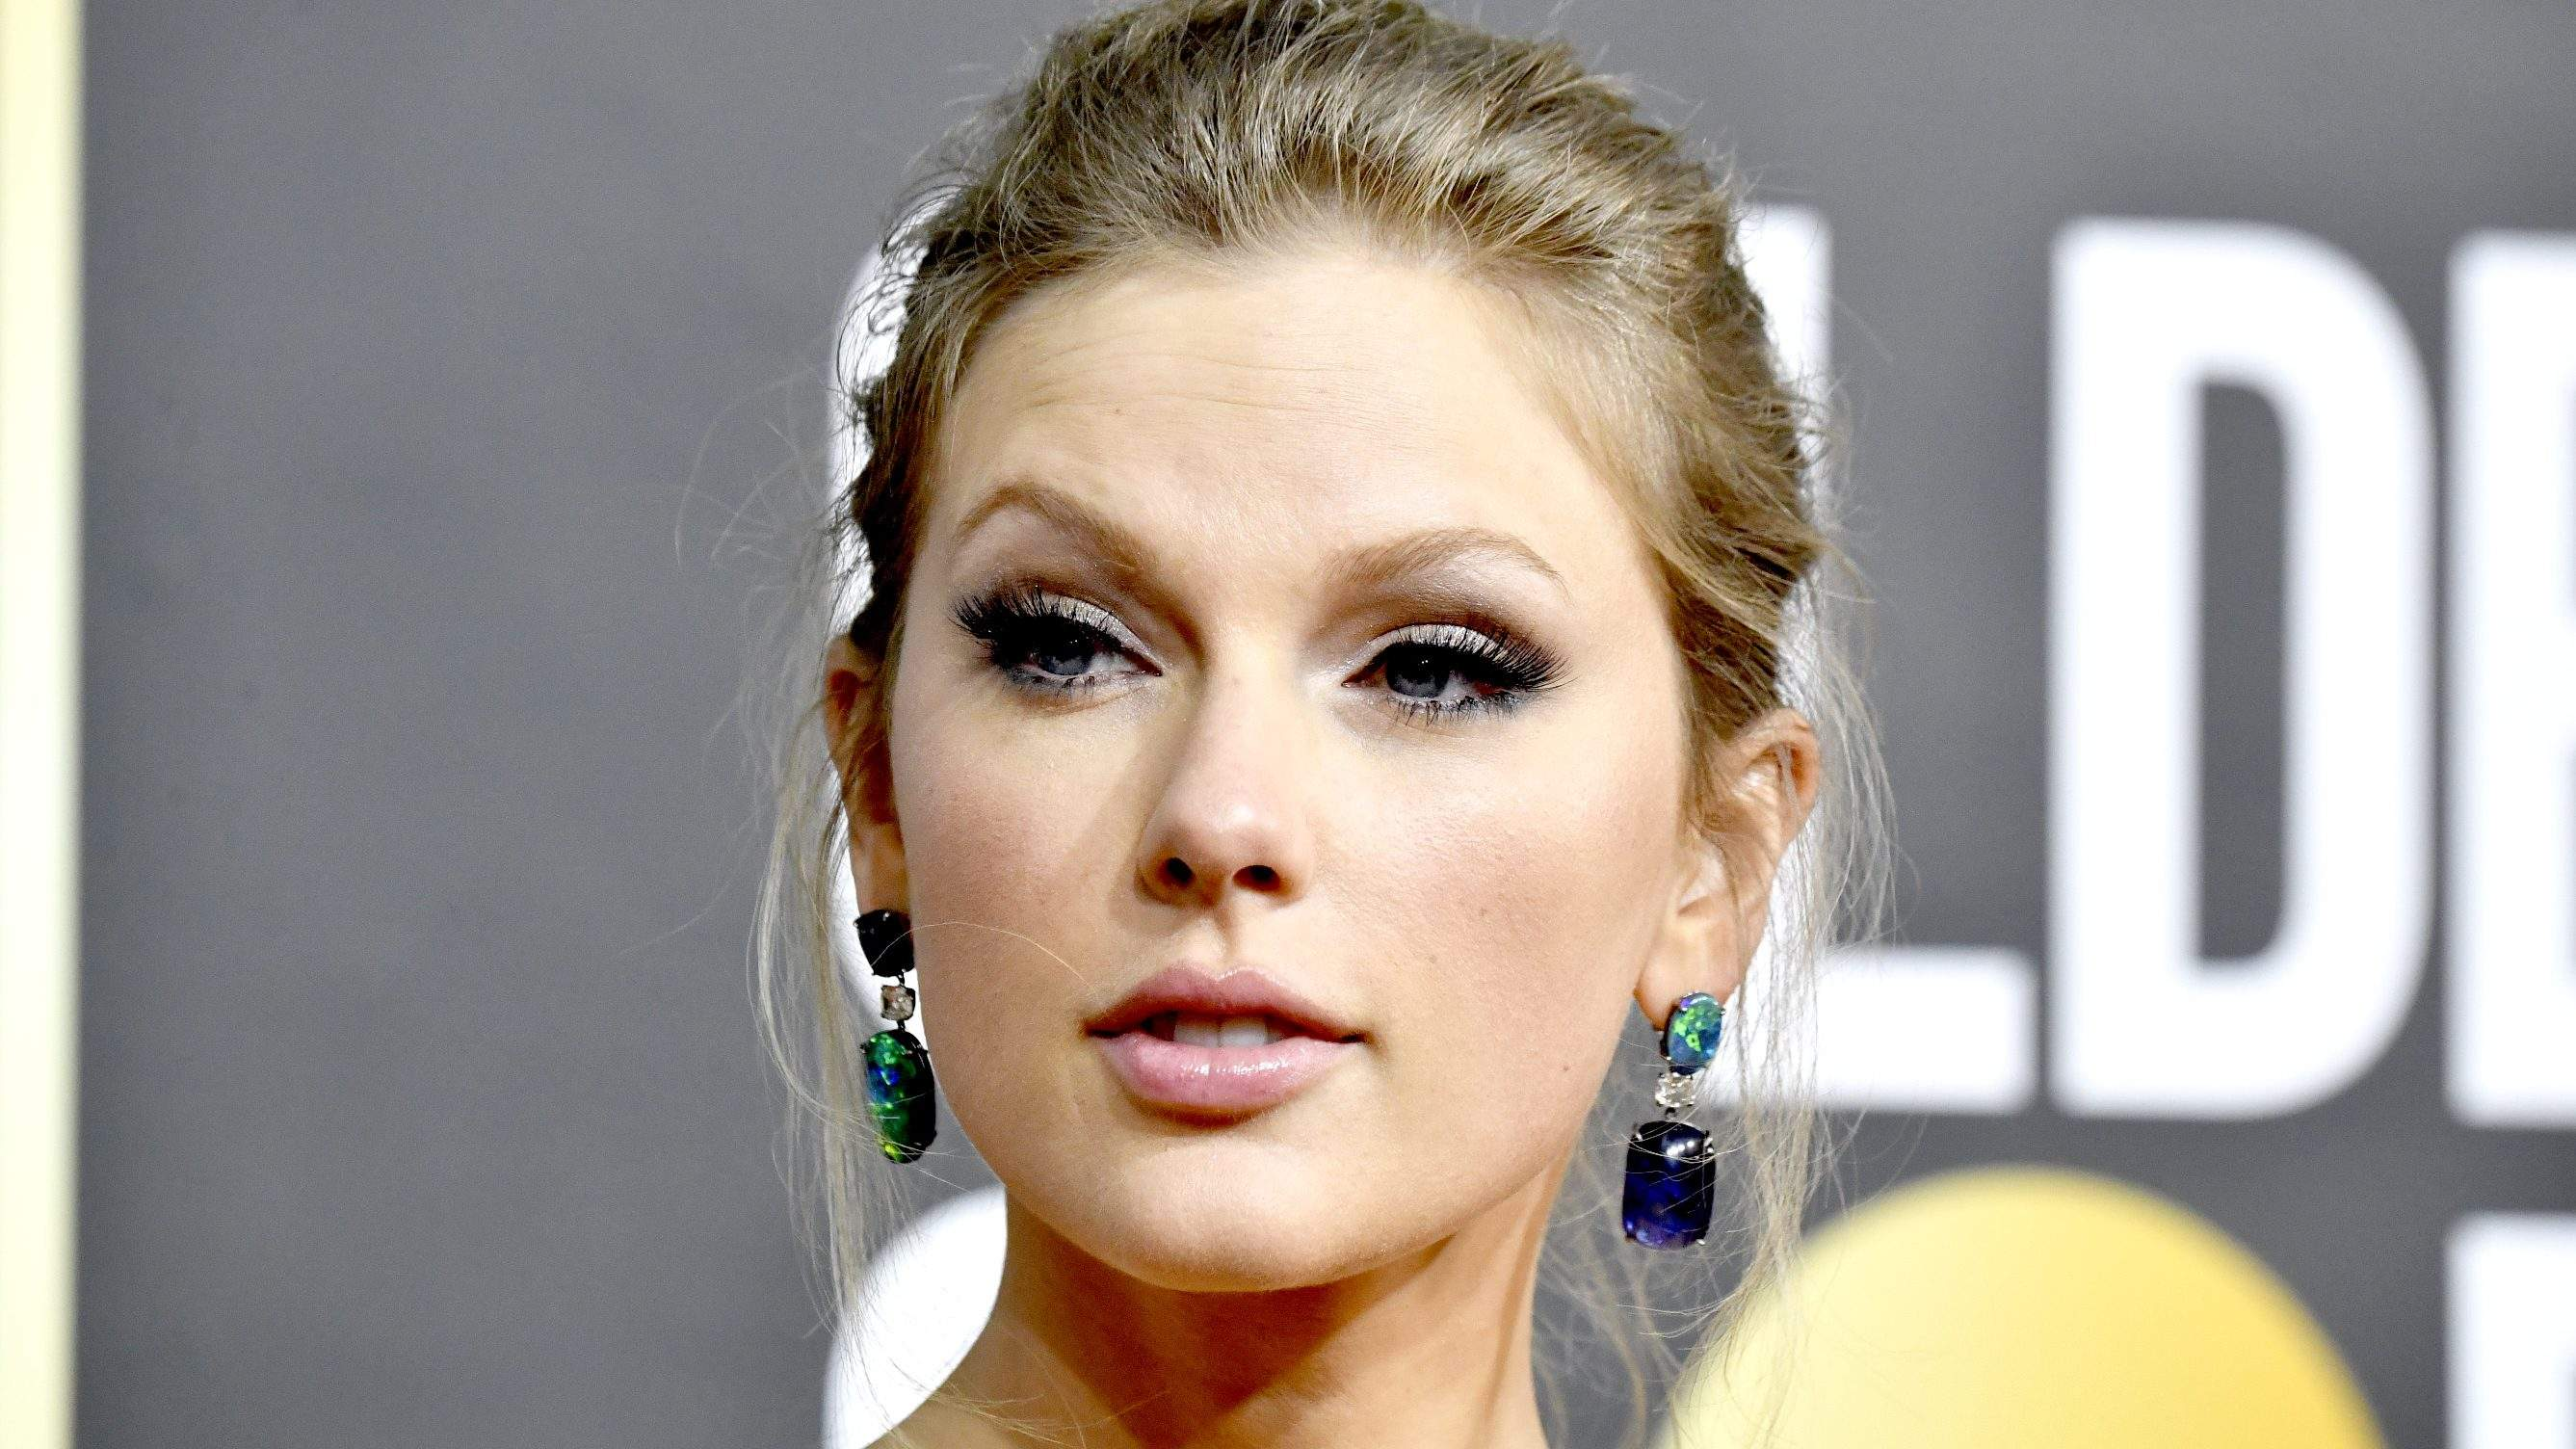 http://31.220.61.170/wp-content/uploads/2020/05/1589735163_428_Taylor-Swift-City-of-Lovers-Concert-Special-Time-Channel.jpg